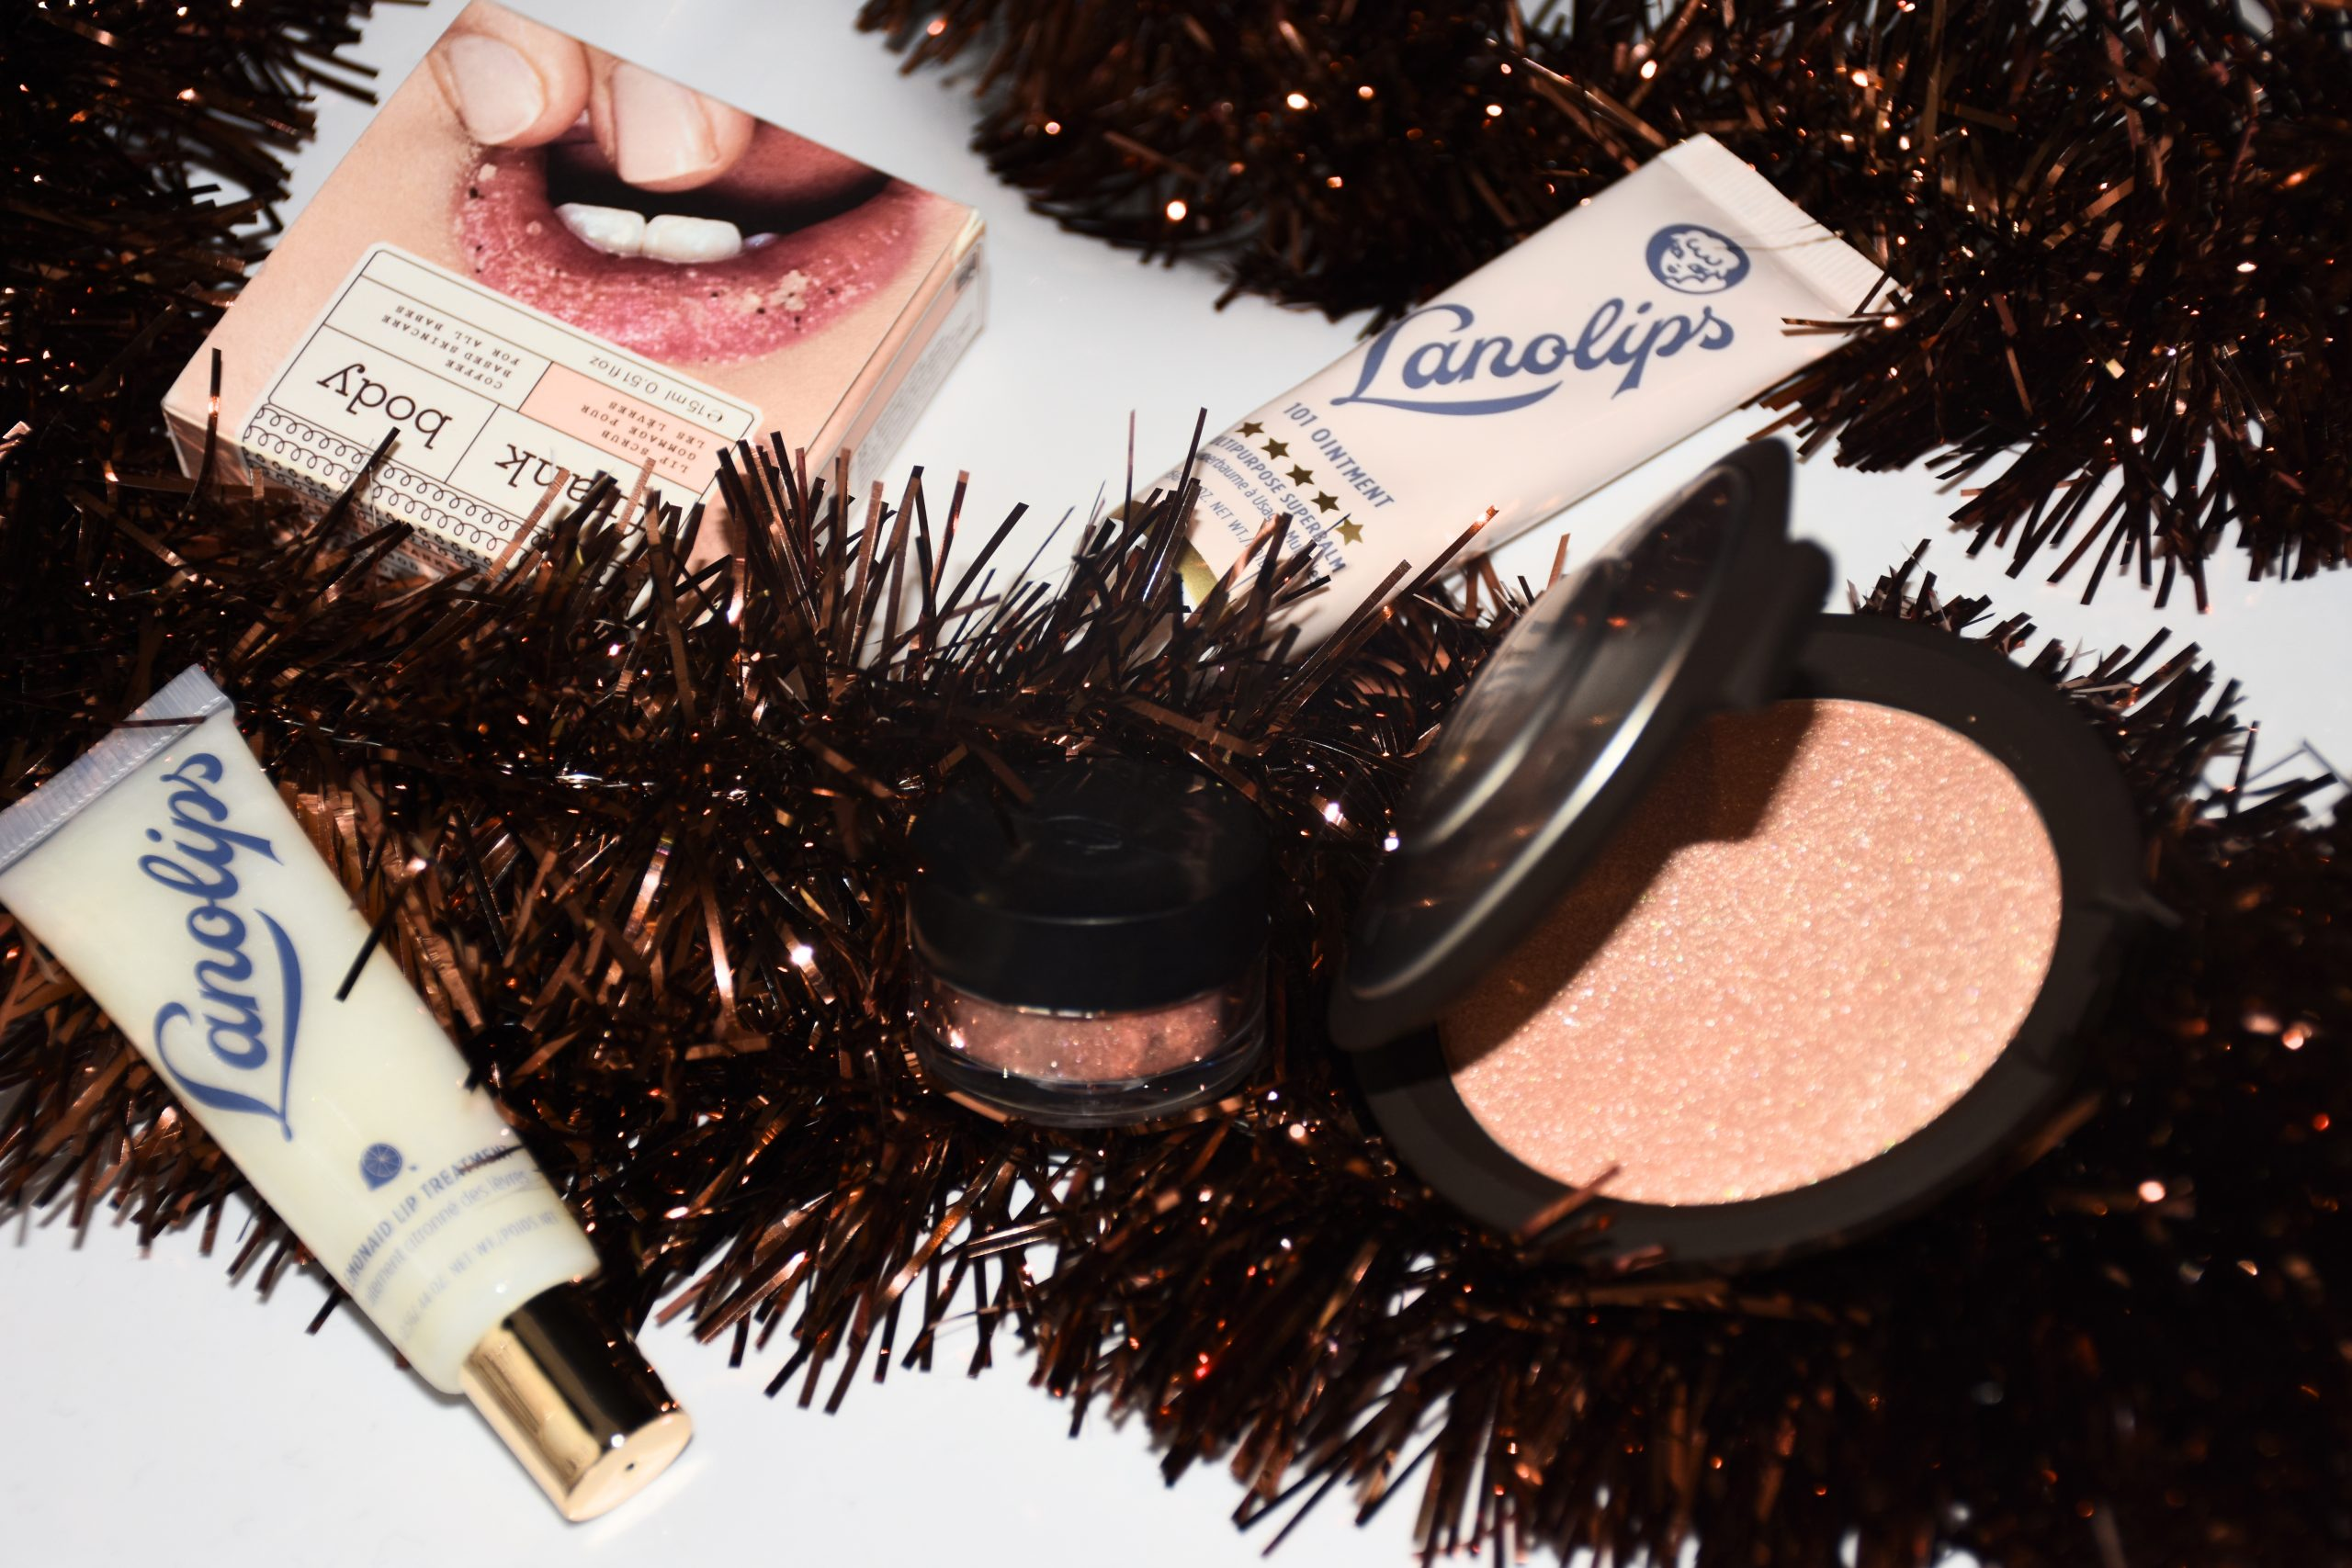 5 BEAUTY PRODUCTS I NEED FOR THIS CHRISTMAS HOLIDAYS